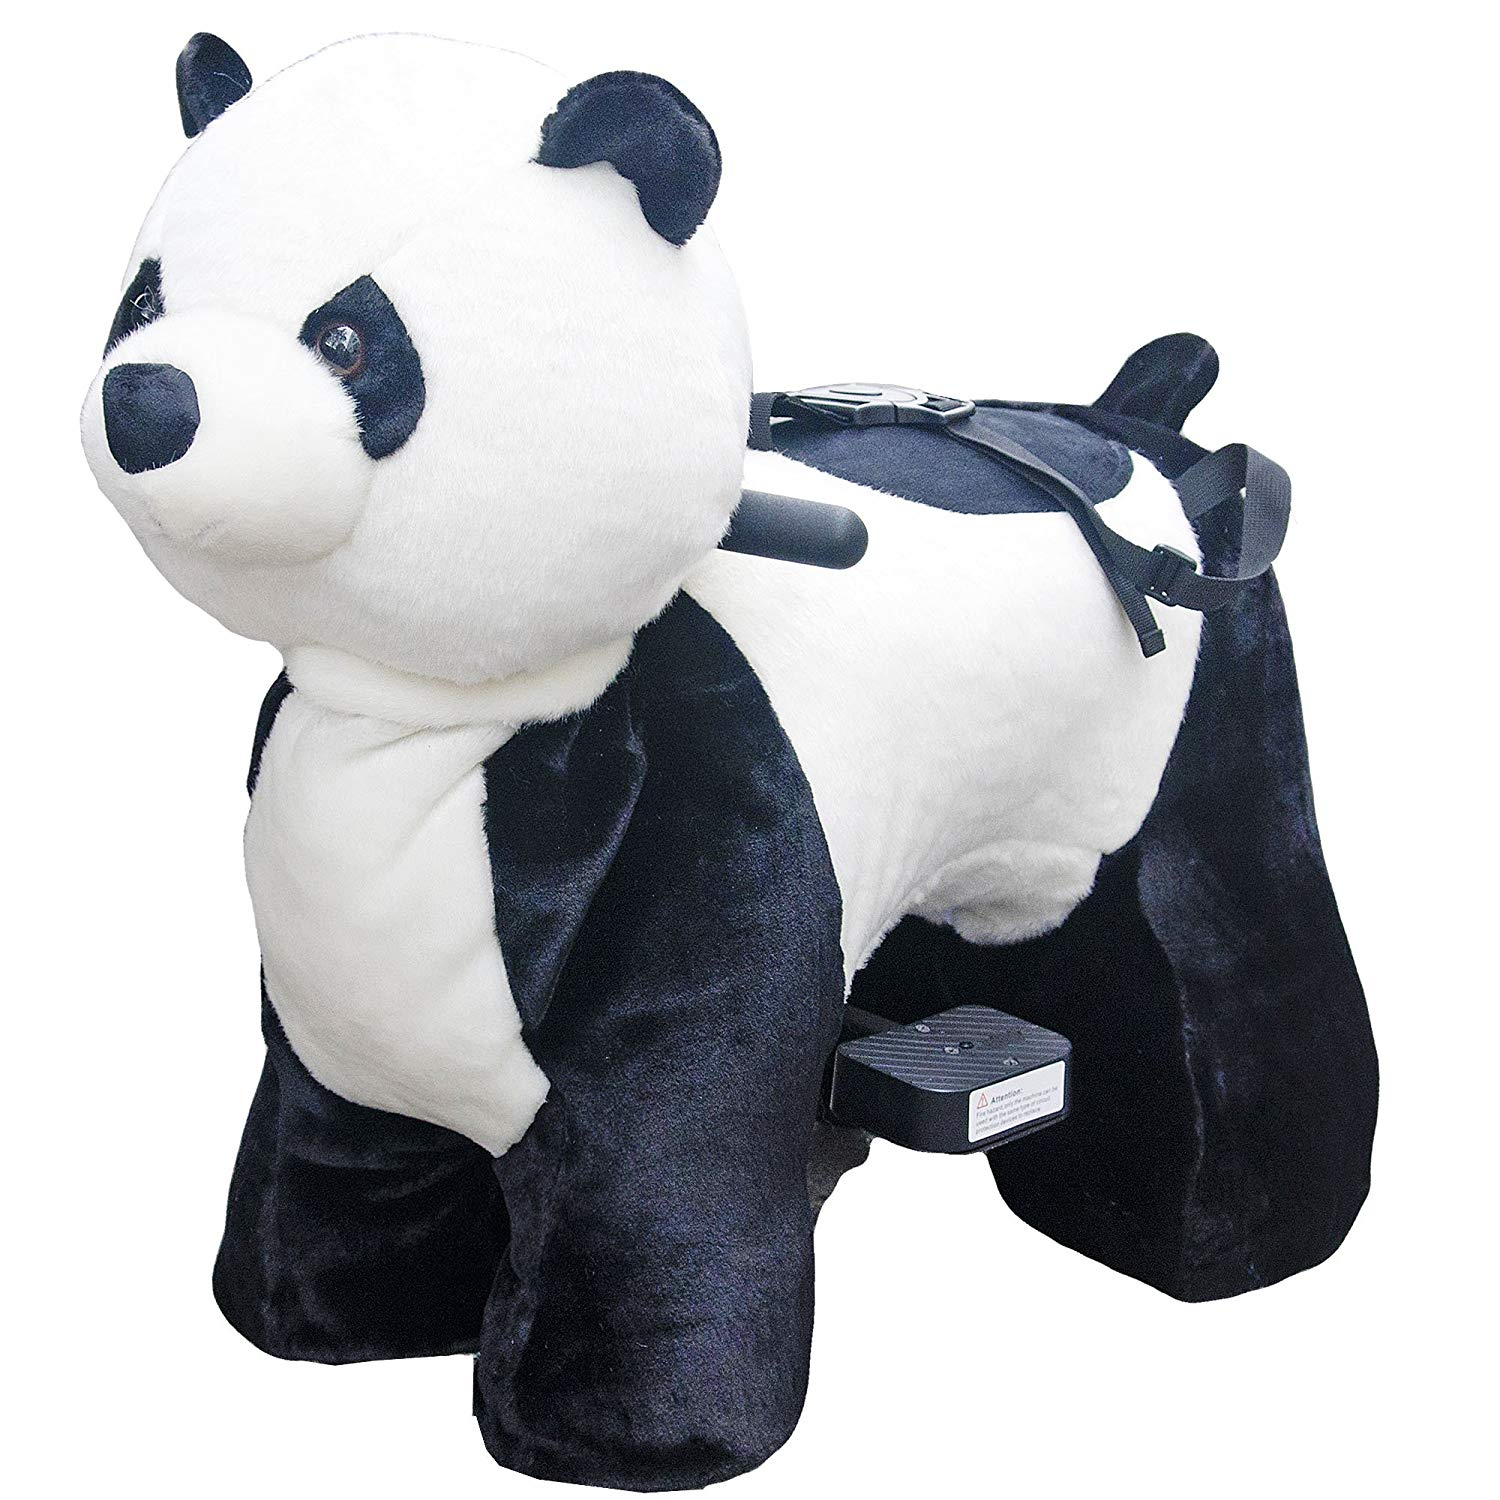 Rechargeable 6v 7a Plush Animal Ride On Toy For Kids 3 7 Years